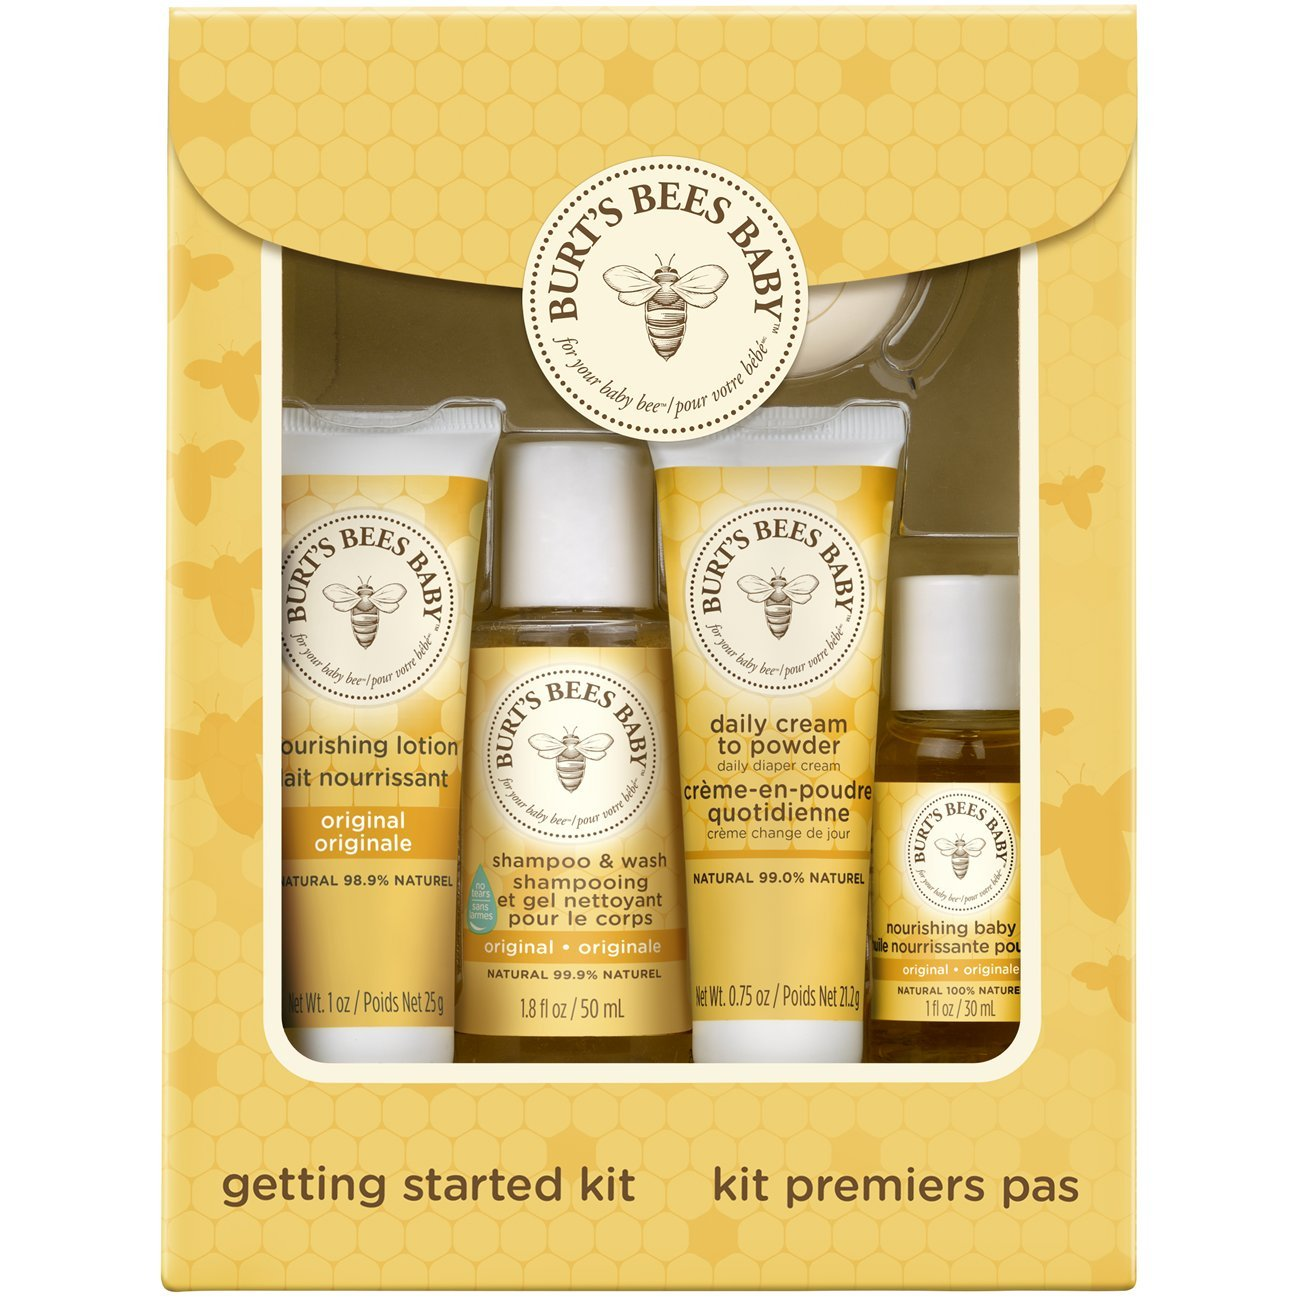 Burts Bees Baby Bee Getting Started Kit 1 box x 3 (Pack of 3)